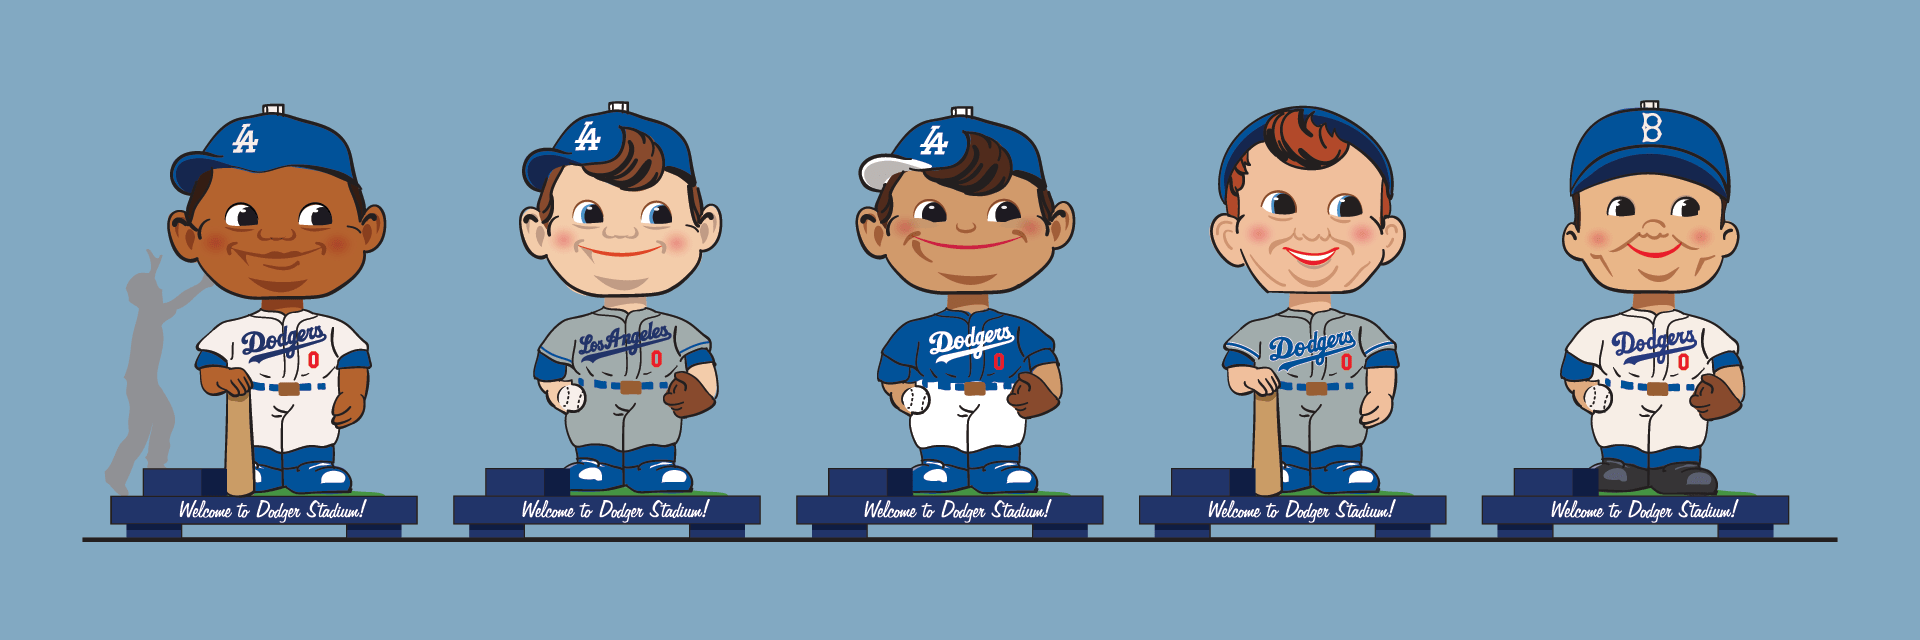 03_ashton_dodgers_kids